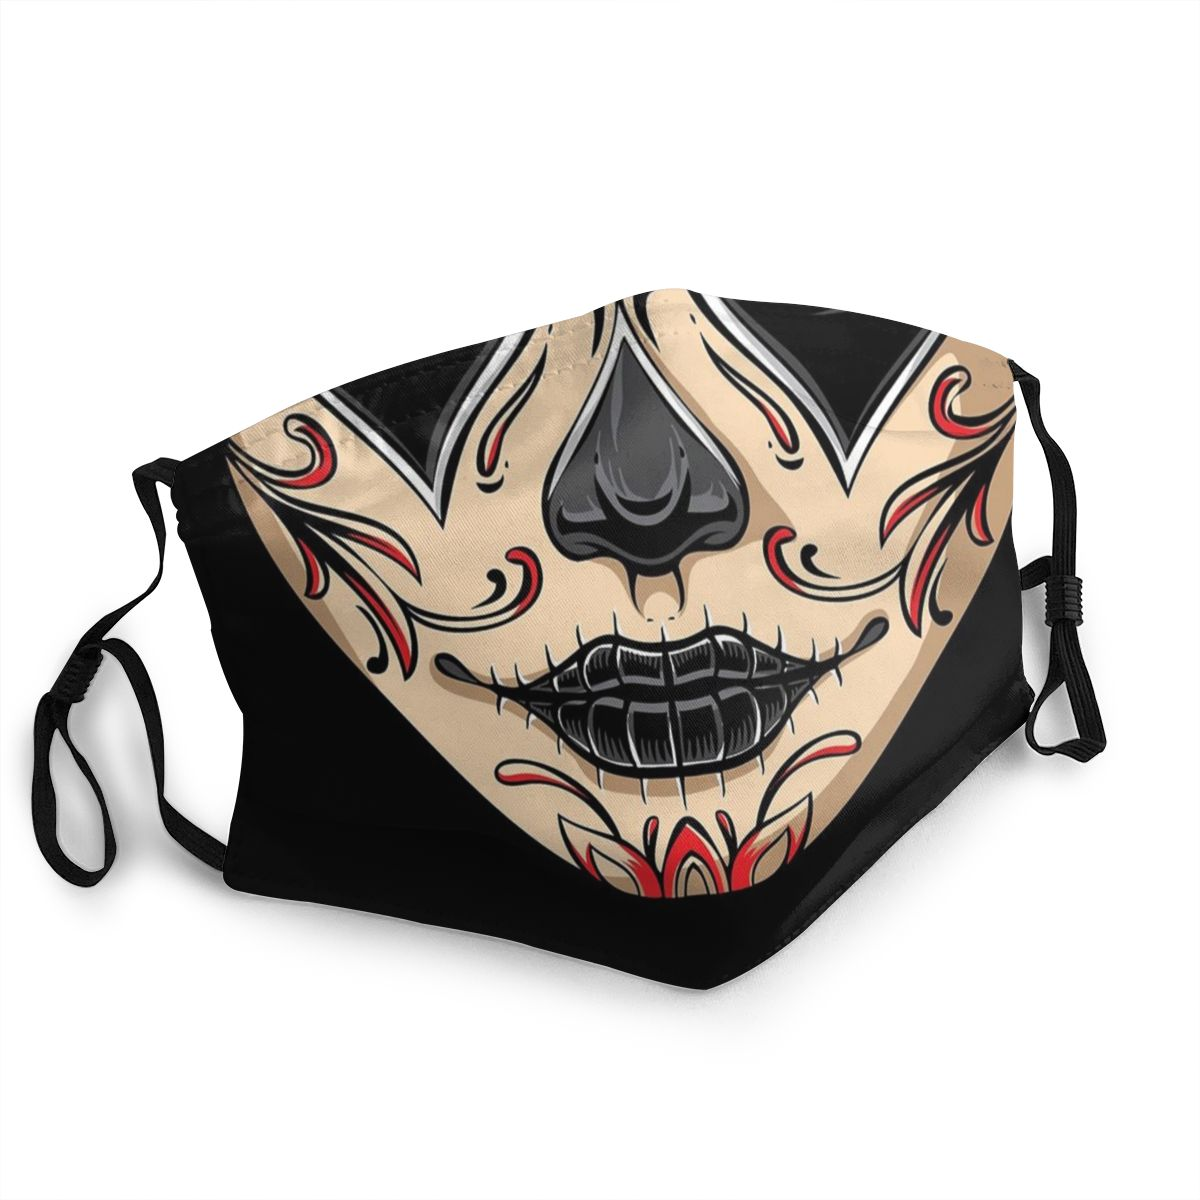 La Catrina Skull Unisex Non-Disposable Mouth Face Mask Anti Haze Dust Protection Cover Respirator